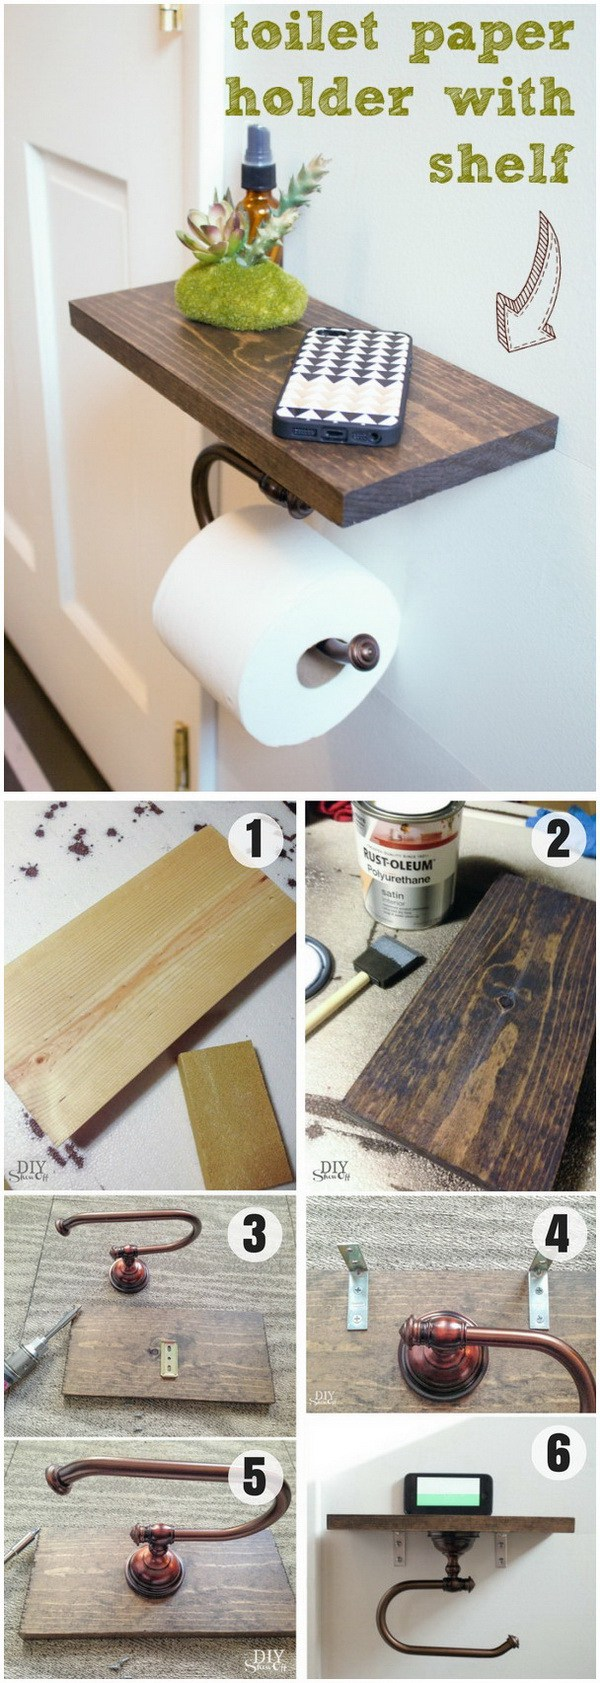 Toilet Paper Holder Shelf And Bathroom Accessories.